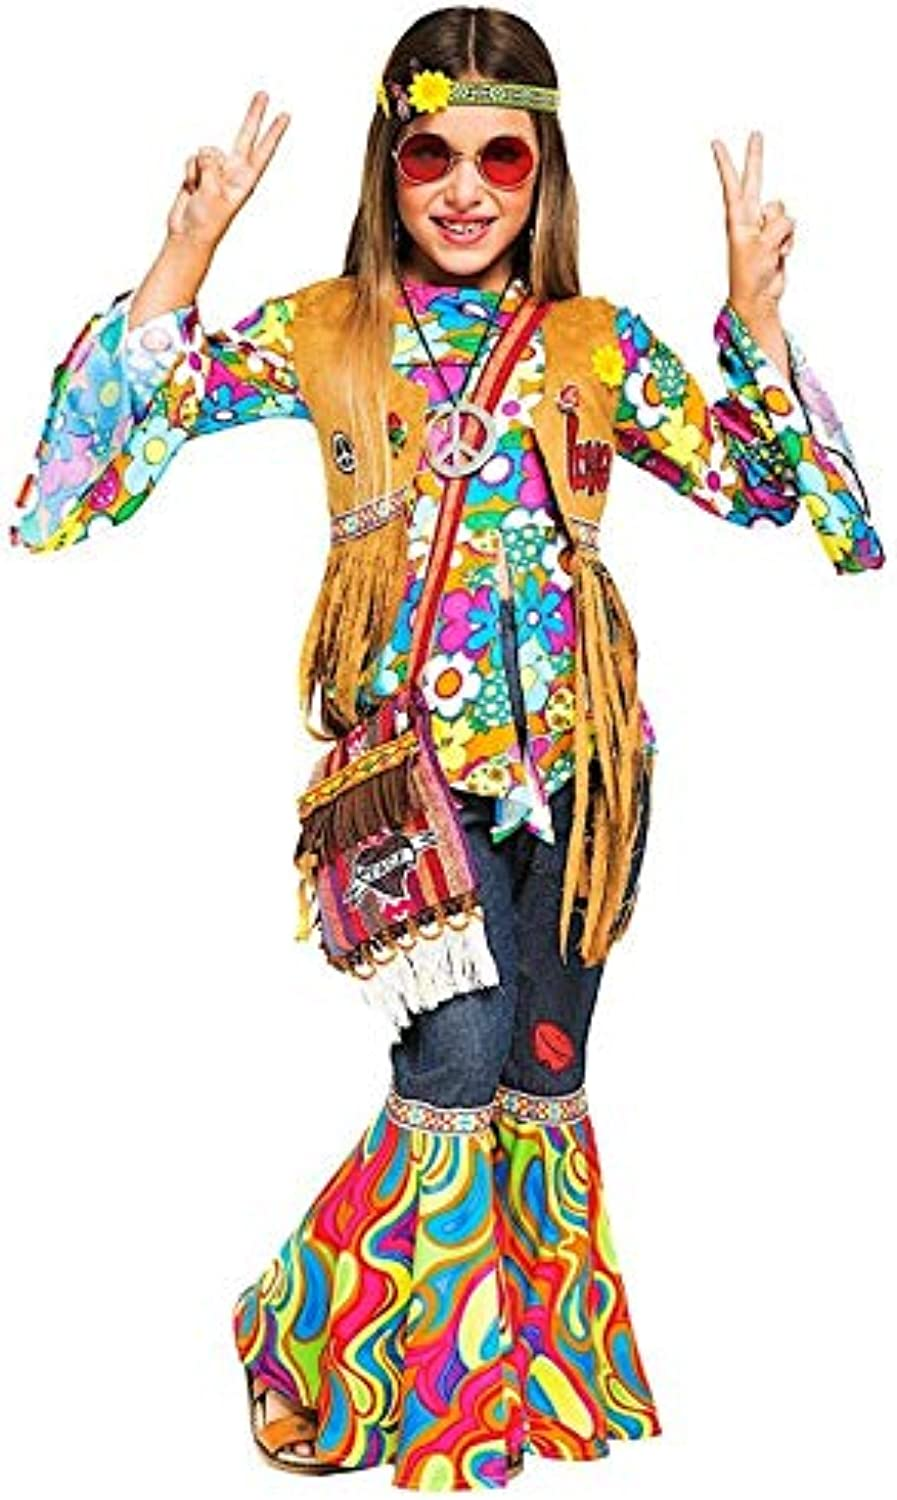 Italian Made Girls Deluxe 1960s 1970s Hippy Hippie Festival Carnival Fancy Dress Costume Outfit 410 years (9 years)